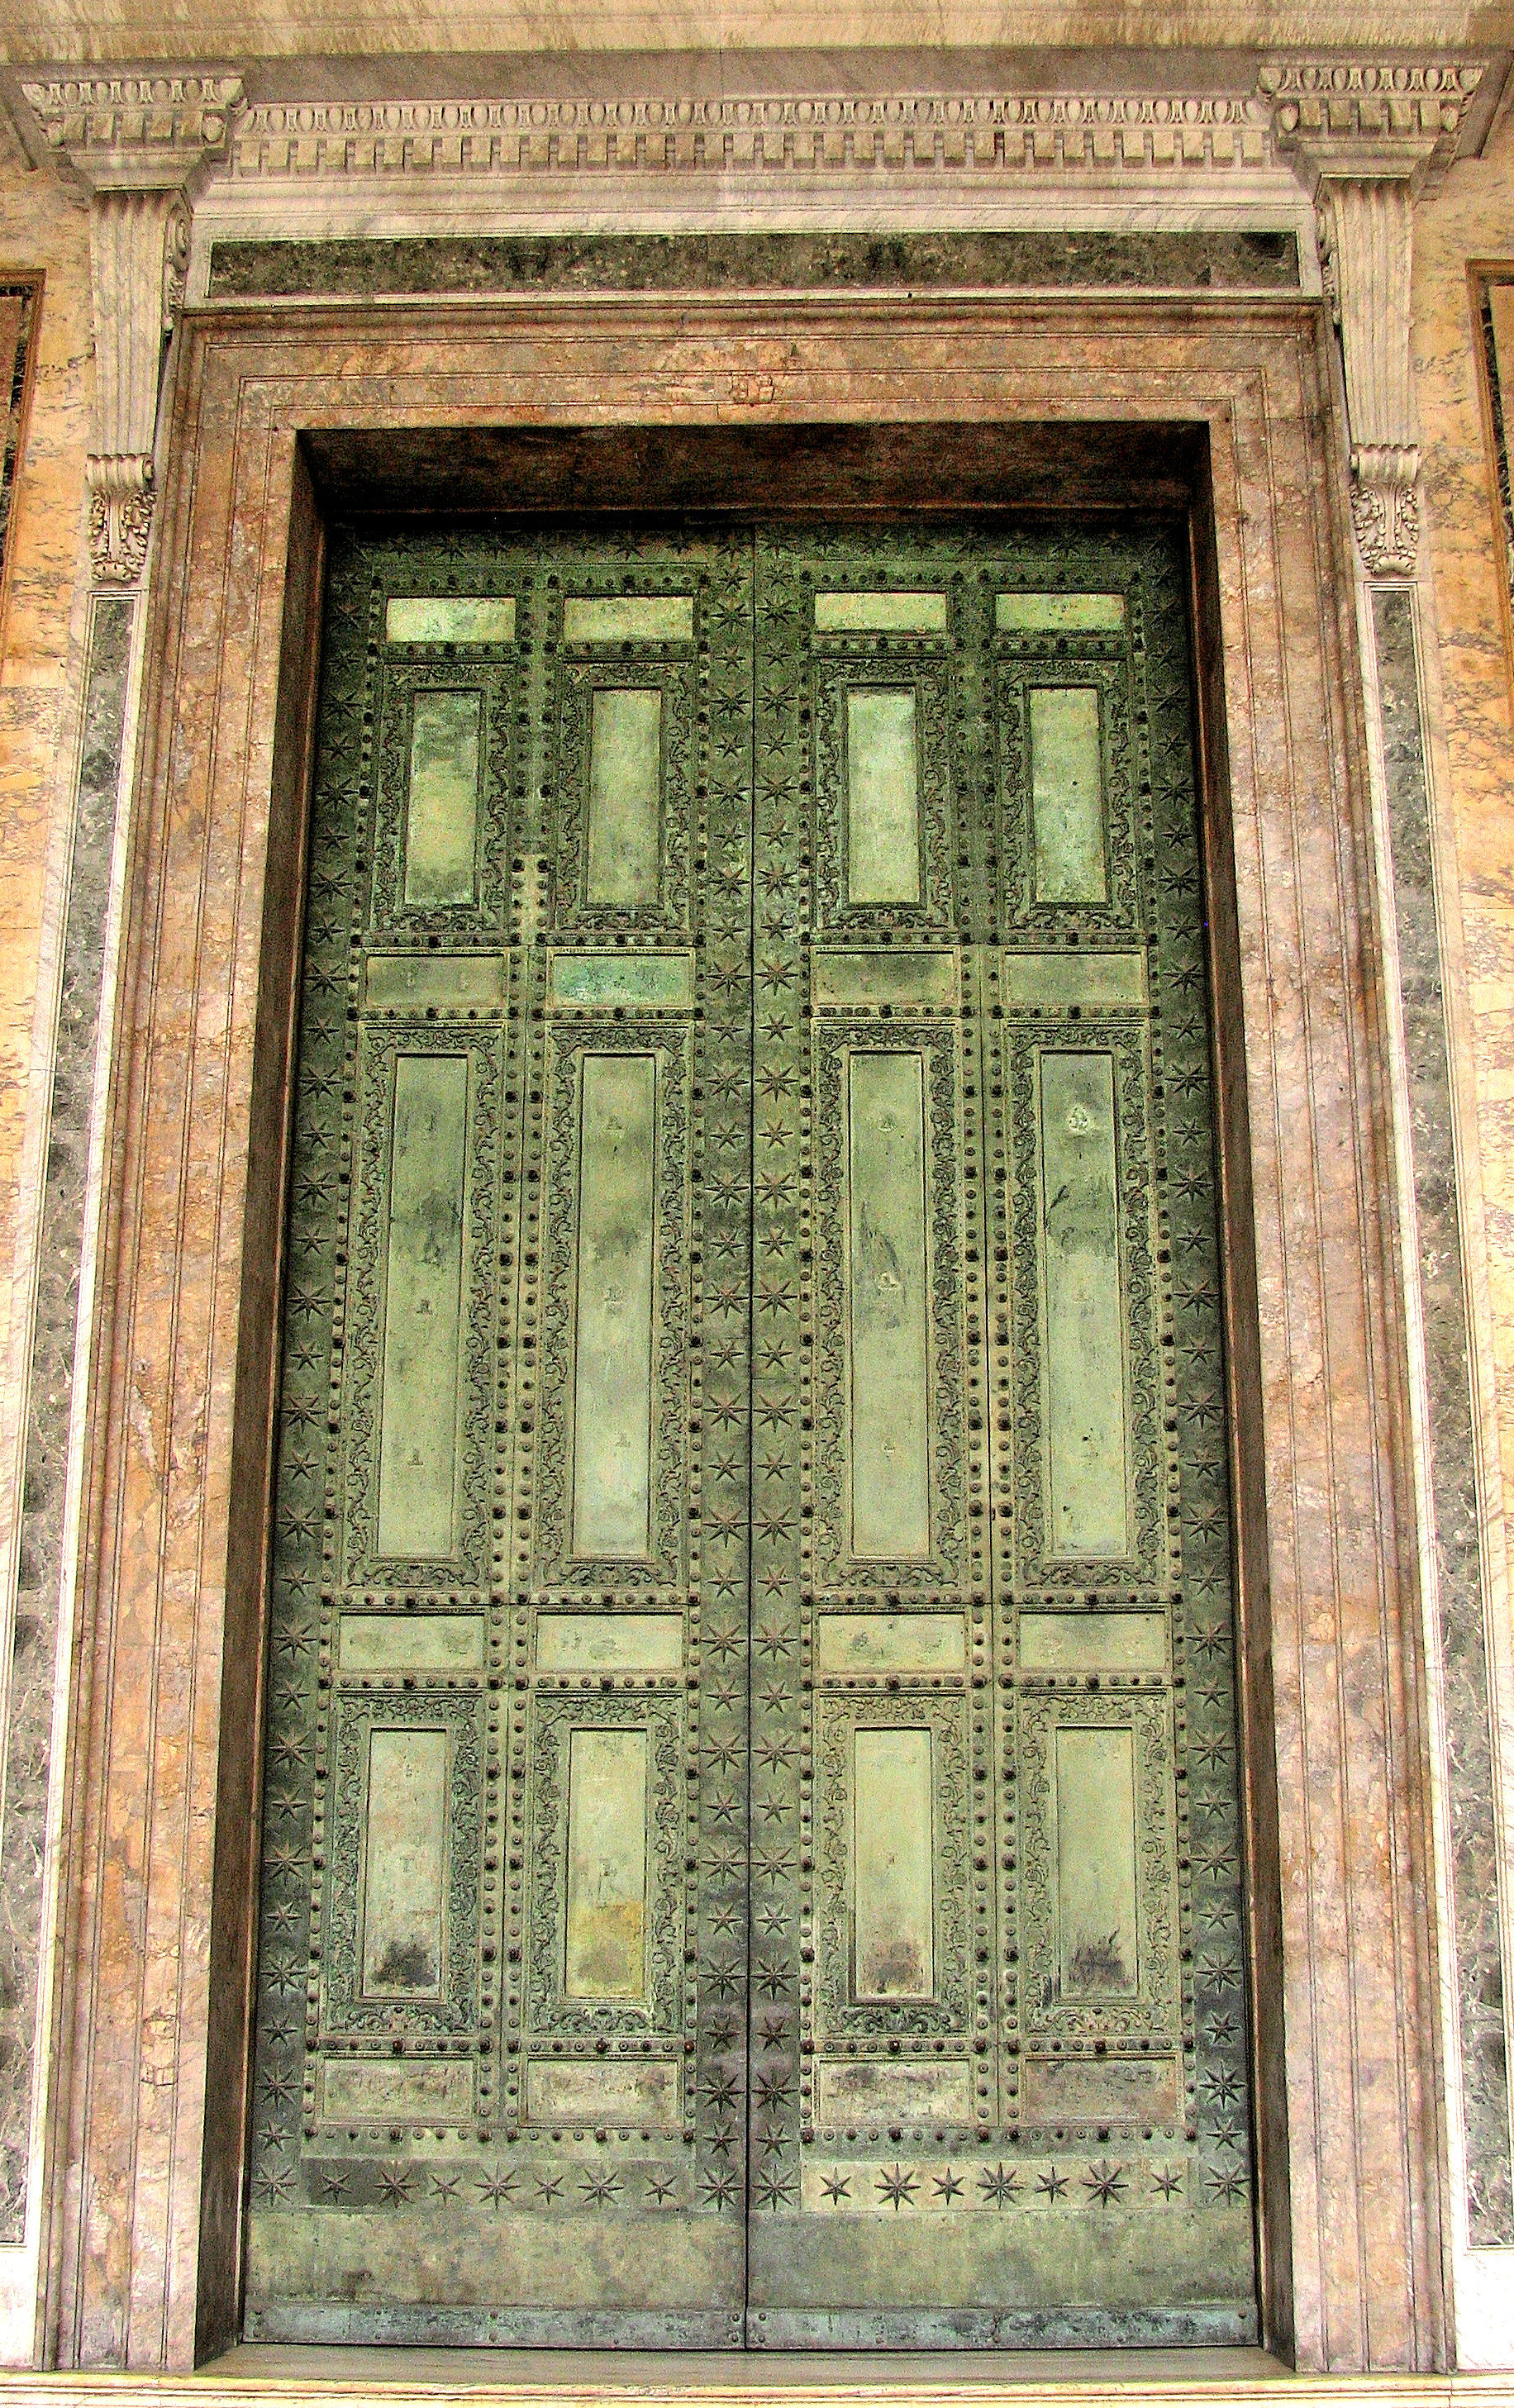 Original Bronze Door of Curia - Now in Lateran Basilica